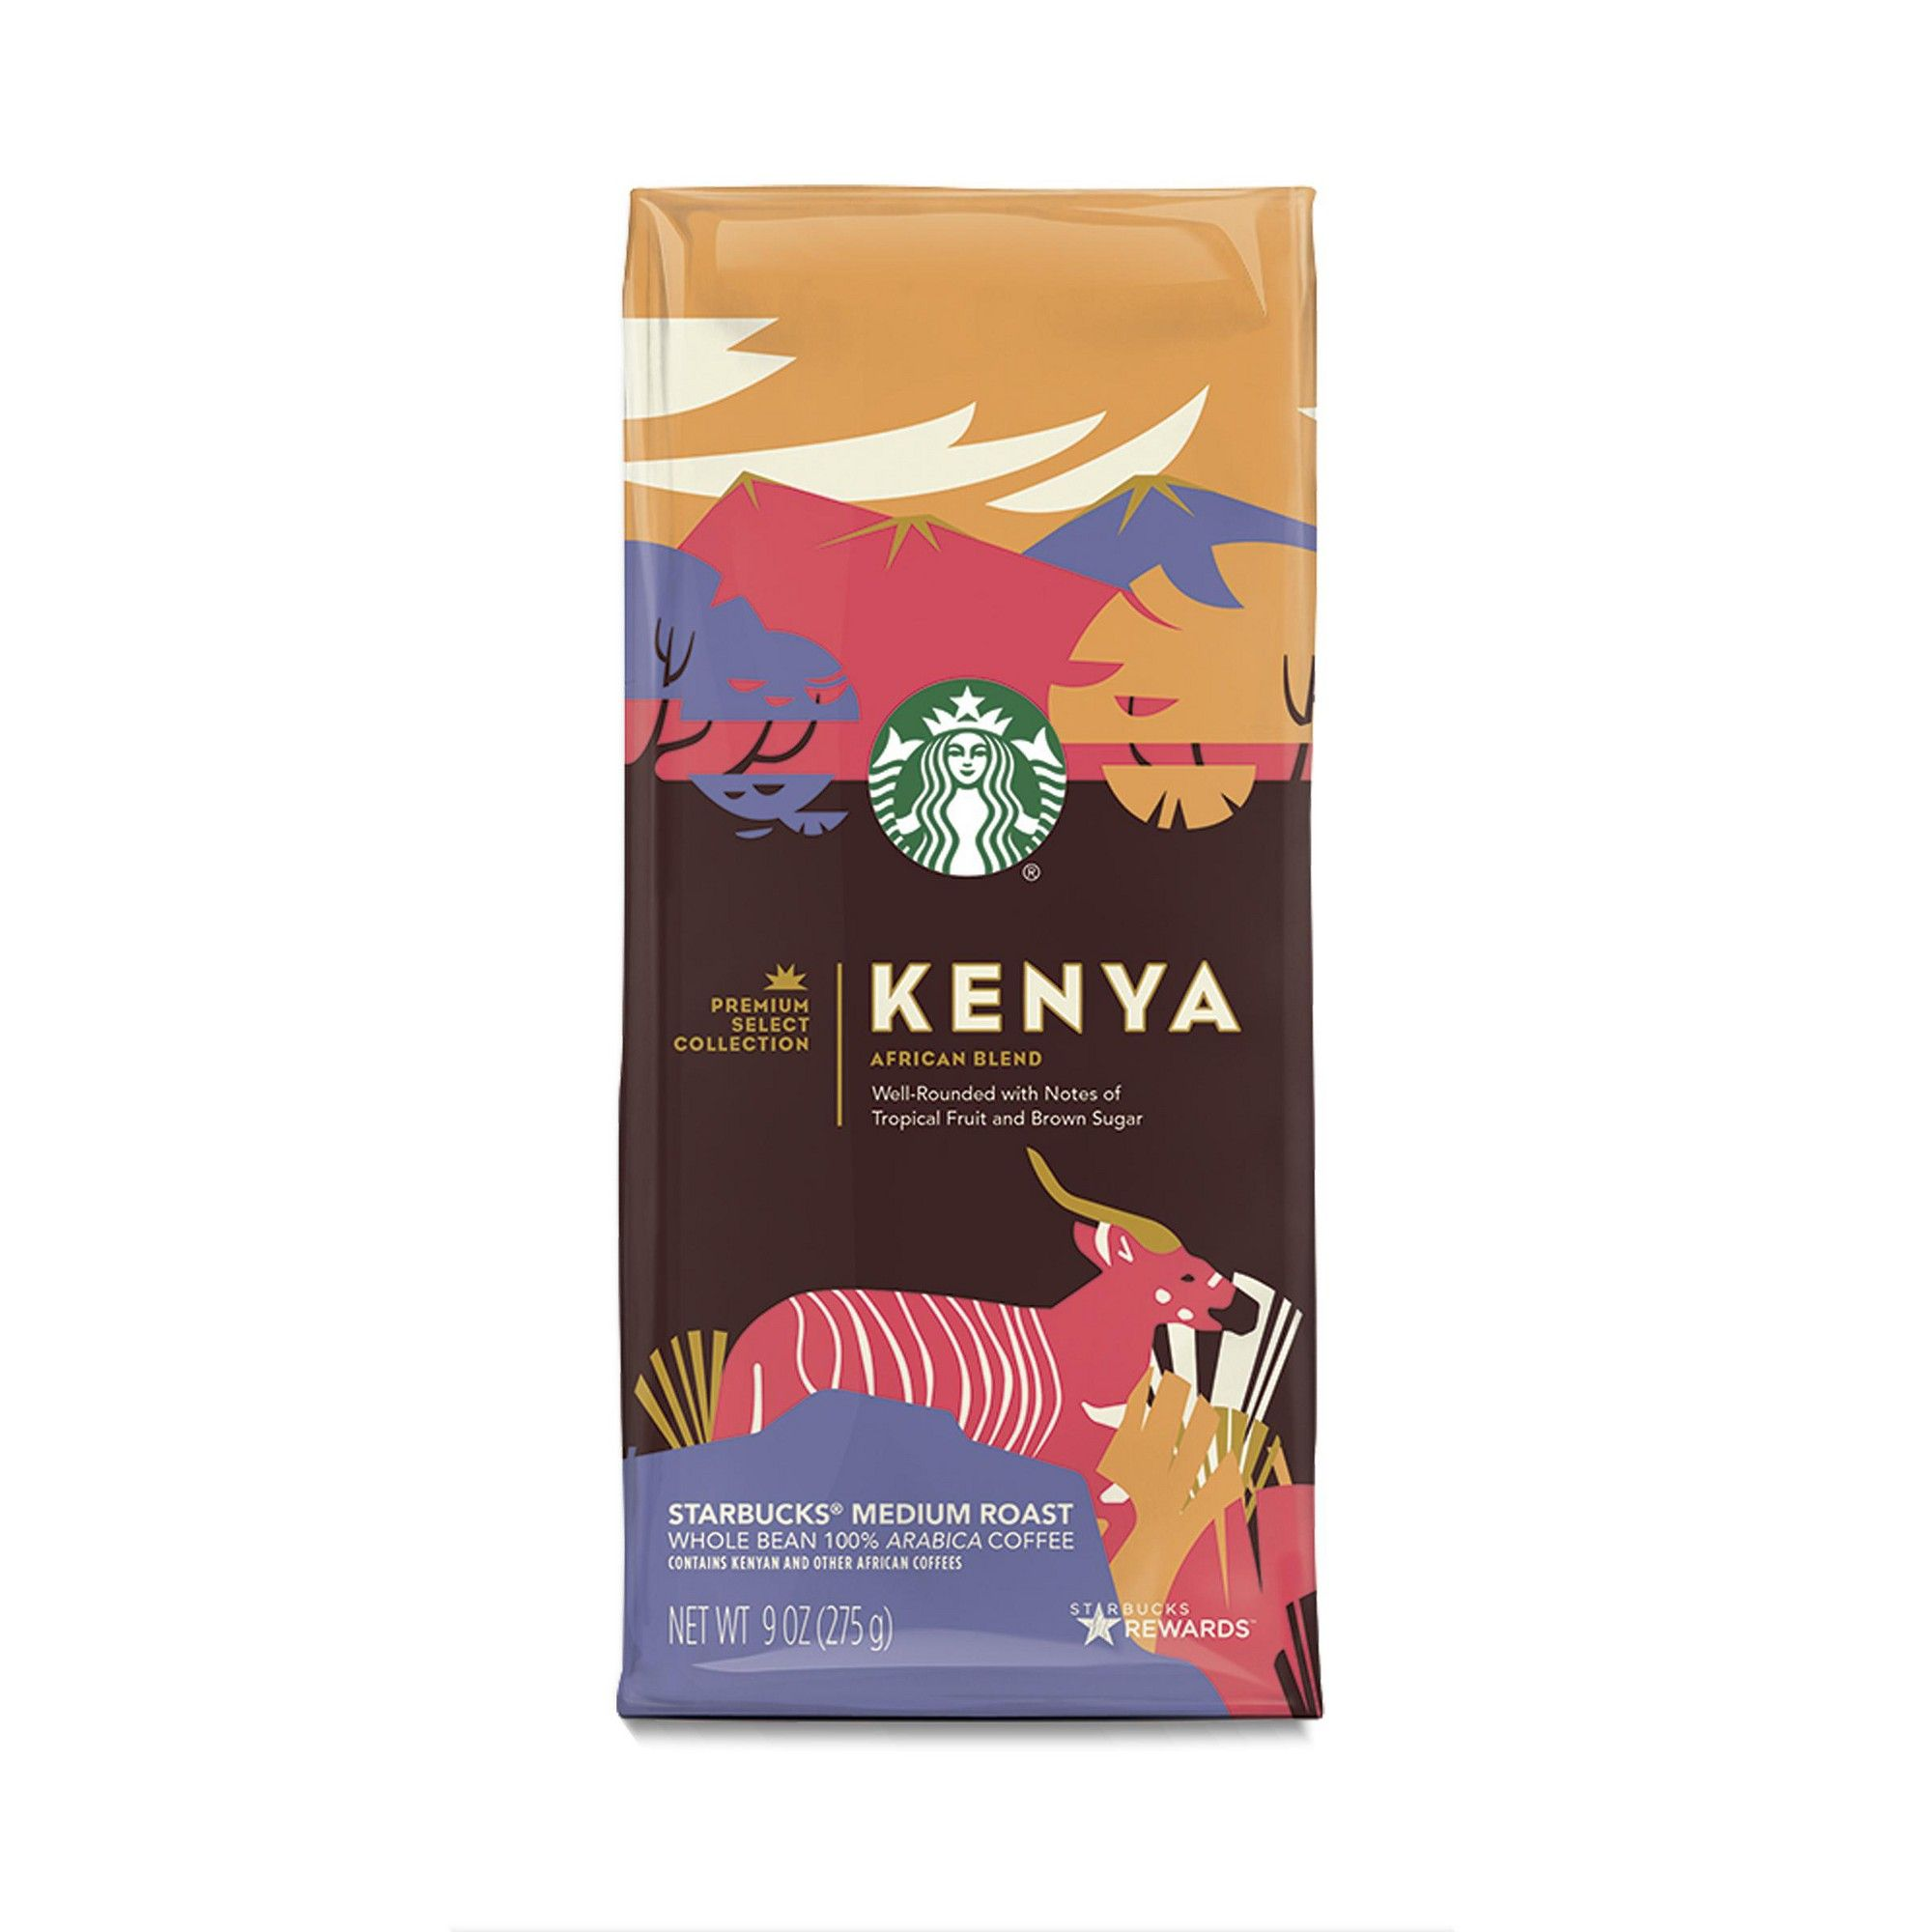 Starbucks Kenya Single Origin Medium Roast Whole Bean